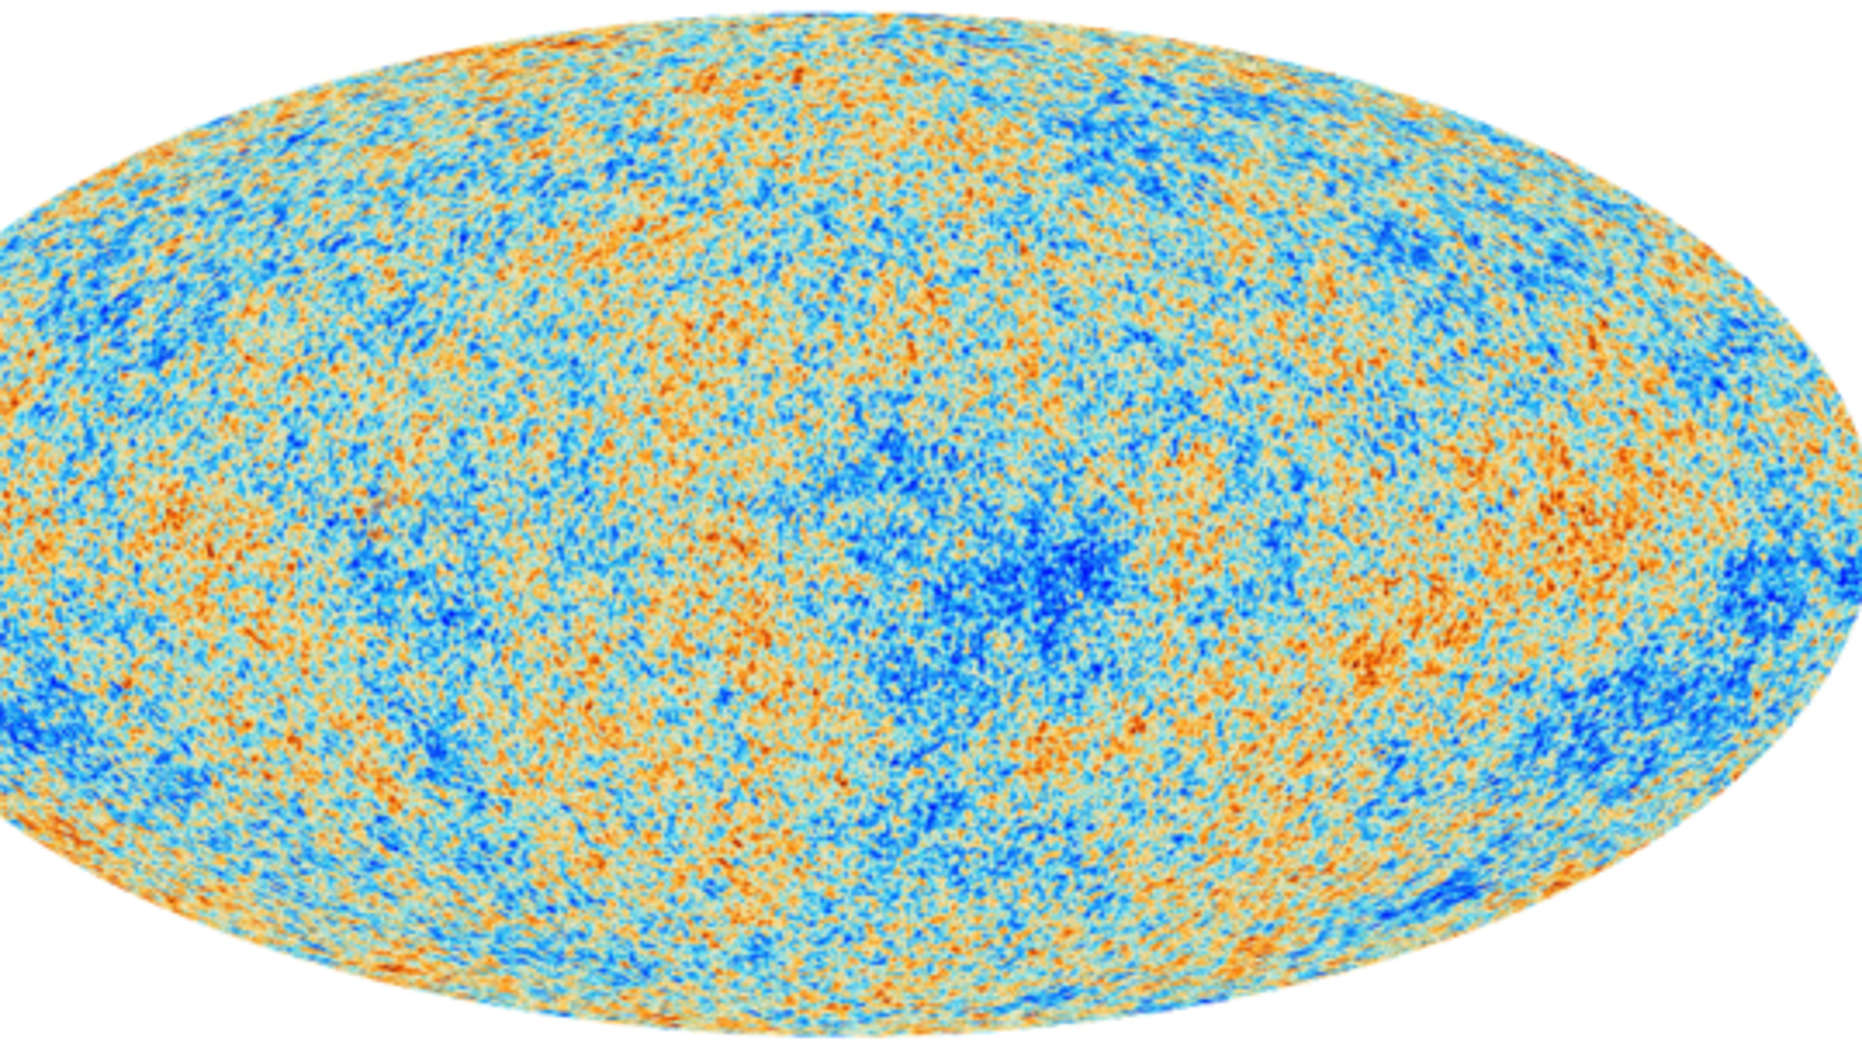 A thermal map of the cosmic microwave background as measured by the Planck observational satellite. A University of Washington physicist used this data to simulate the sound of the Big Bang.